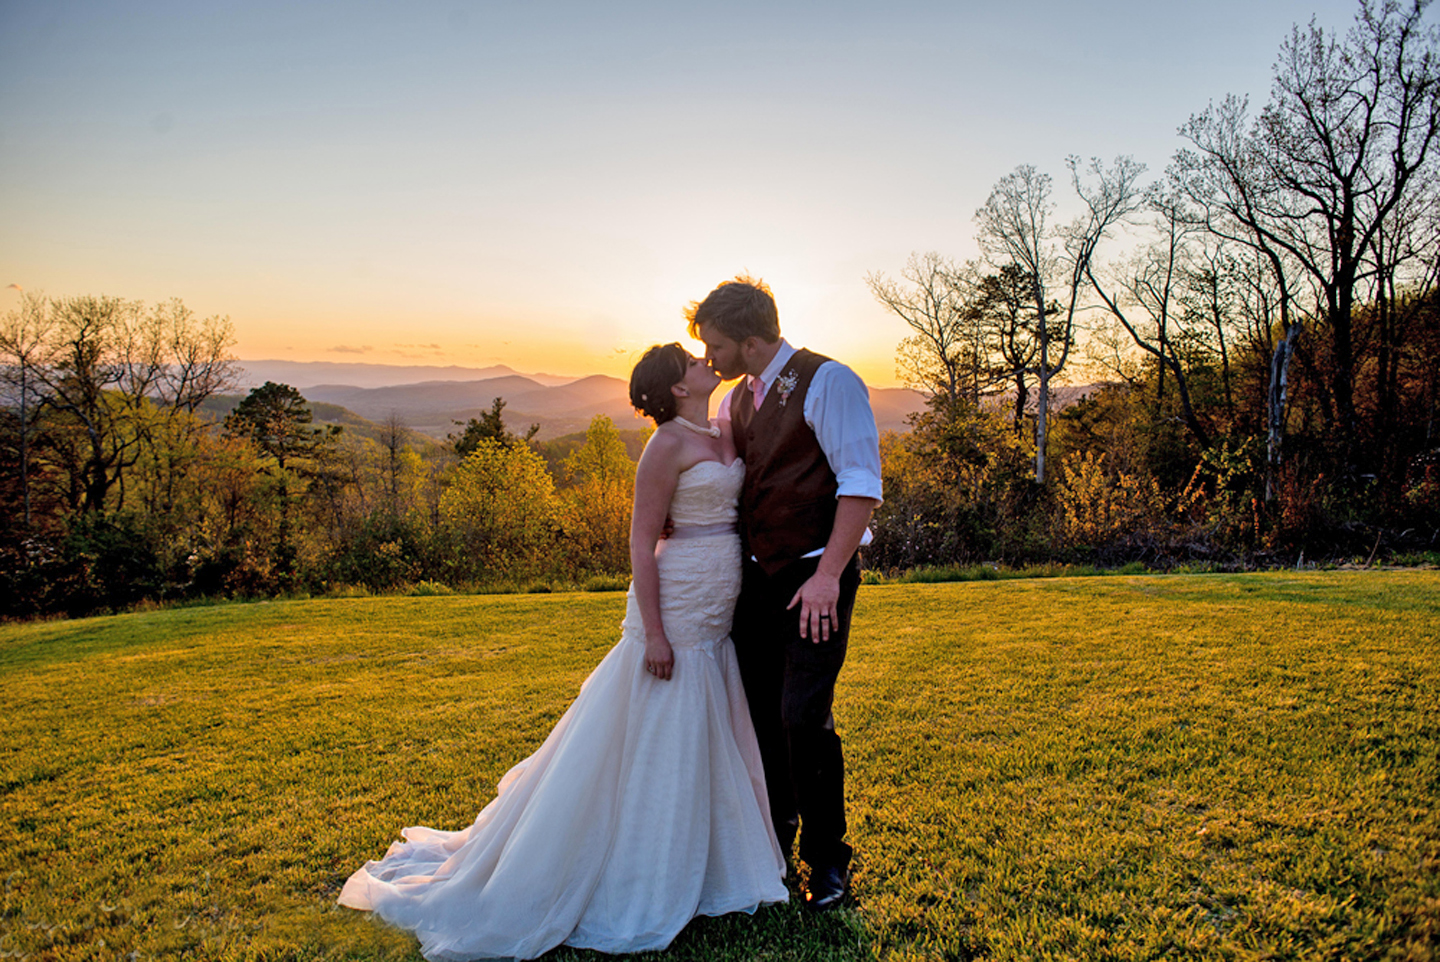 outdoor wedding venues near me in western nc the cabin ridge